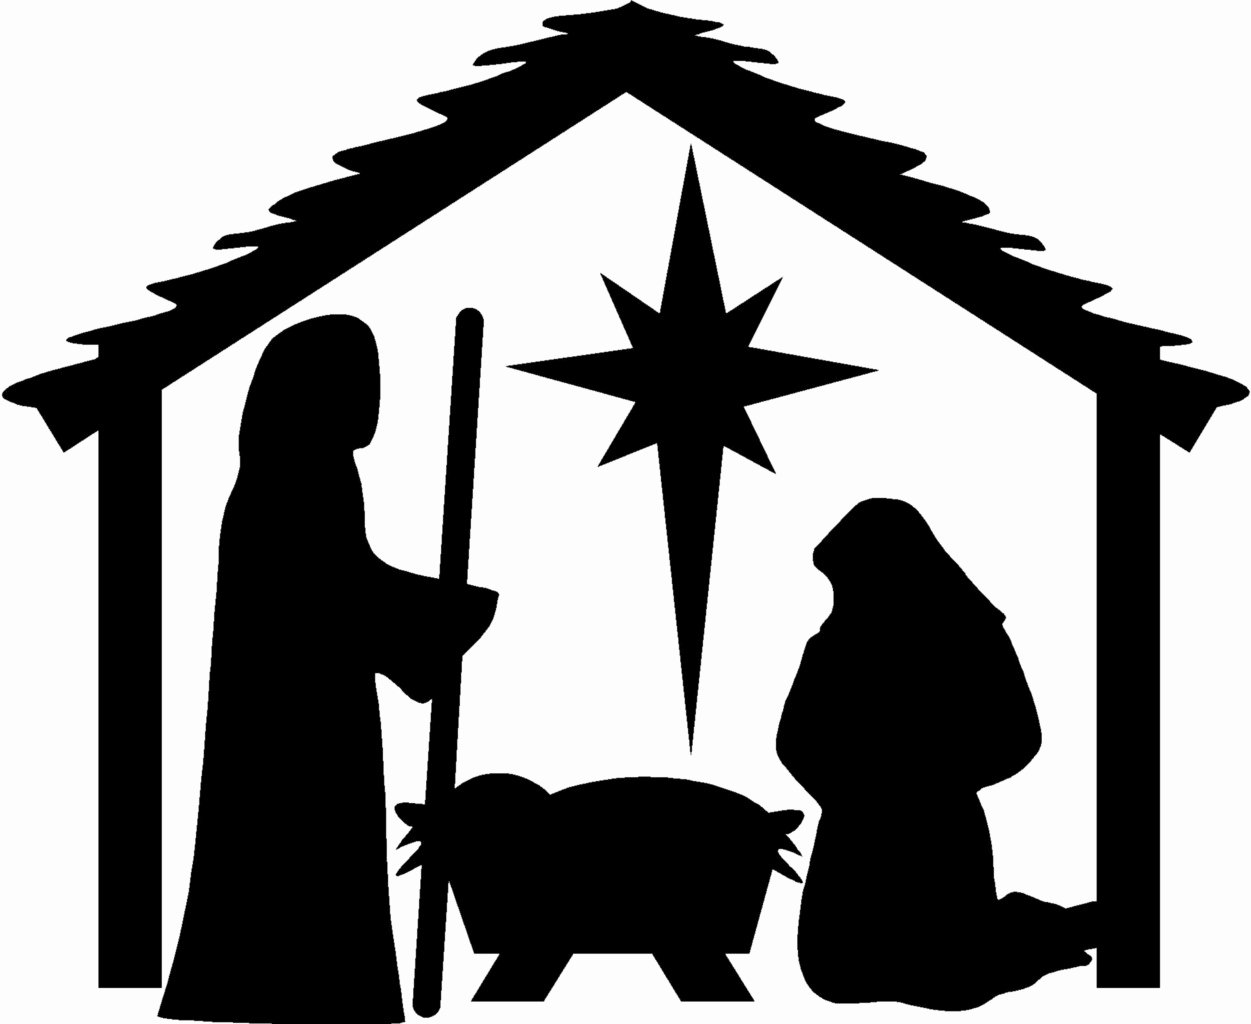 Nativity Silhouette Printable Best Of Nativity Christmas Wall Stickers Vinyl Decal Decor Art